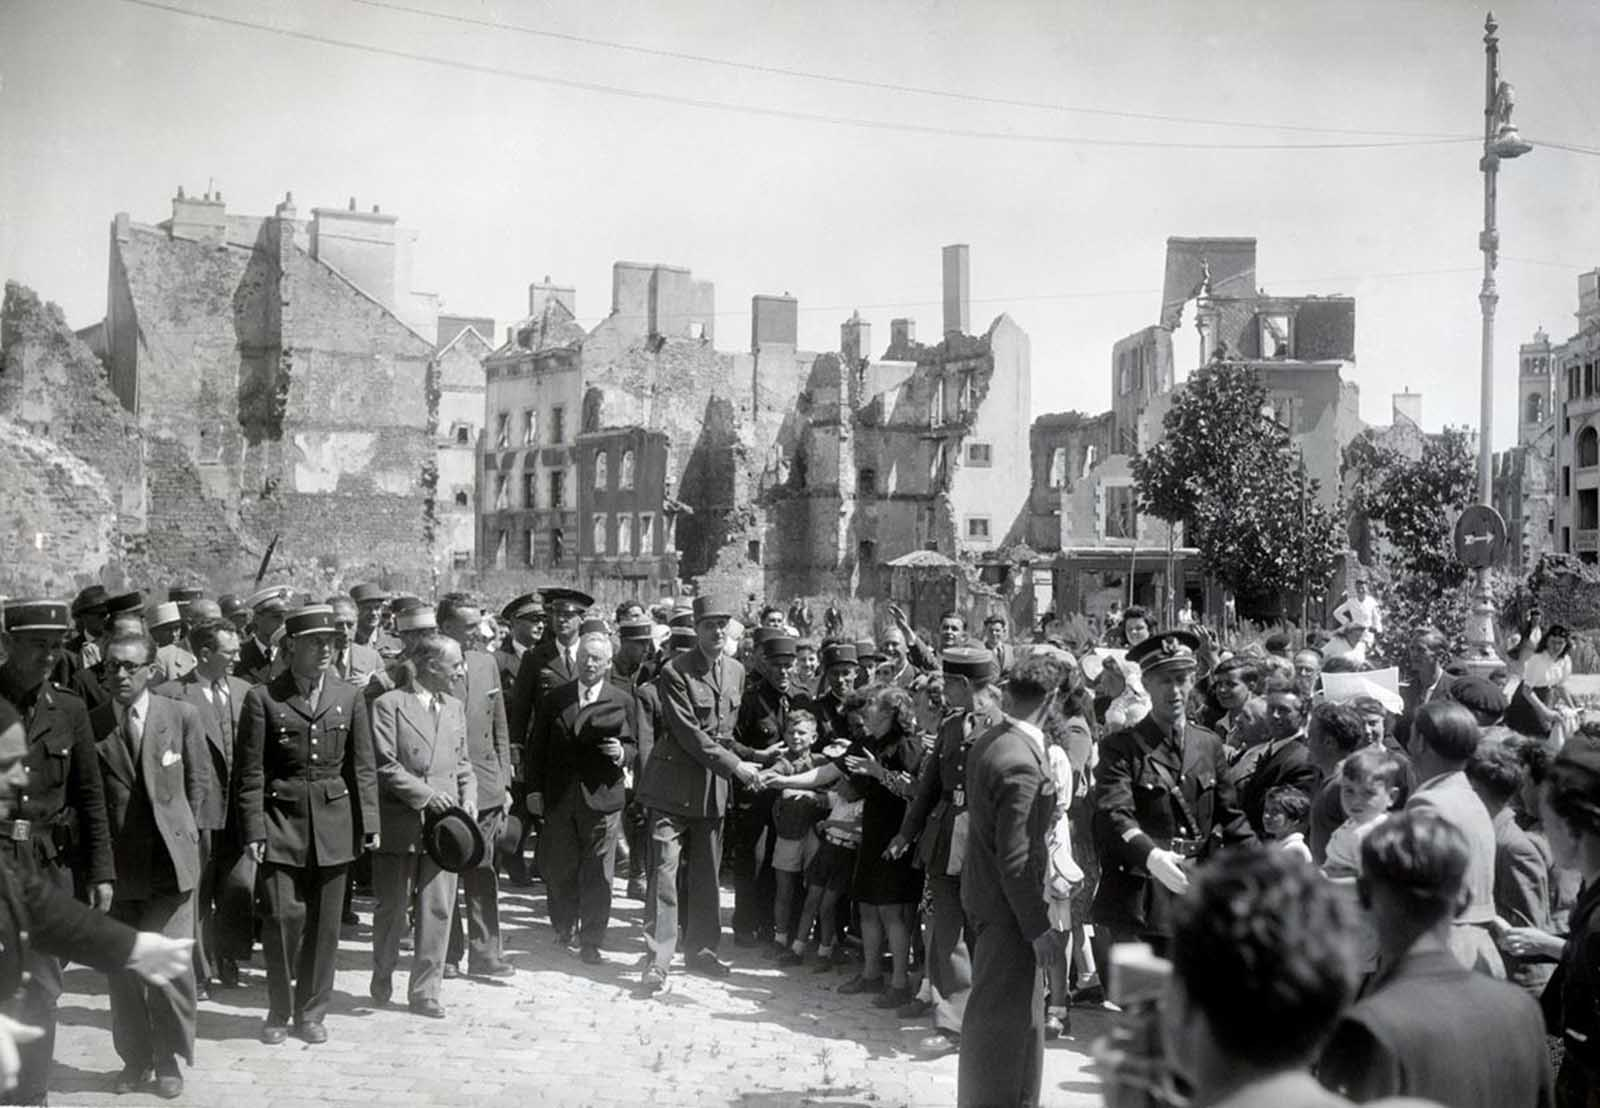 General Charles de Gaulle (center) shaking hands with children, two months after the German capitulation in Lorient, France, in July of 1945. Lorient was the location of a German U-boat (submarine) base during World War II. Between January 14 and February 17, 1943, as many as 500 high-explosive aerial bombs and more than 60,000 incendiary bombs were dropped on Lorient. The city was almost completely destroyed, with nearly 90% of the city flattened.